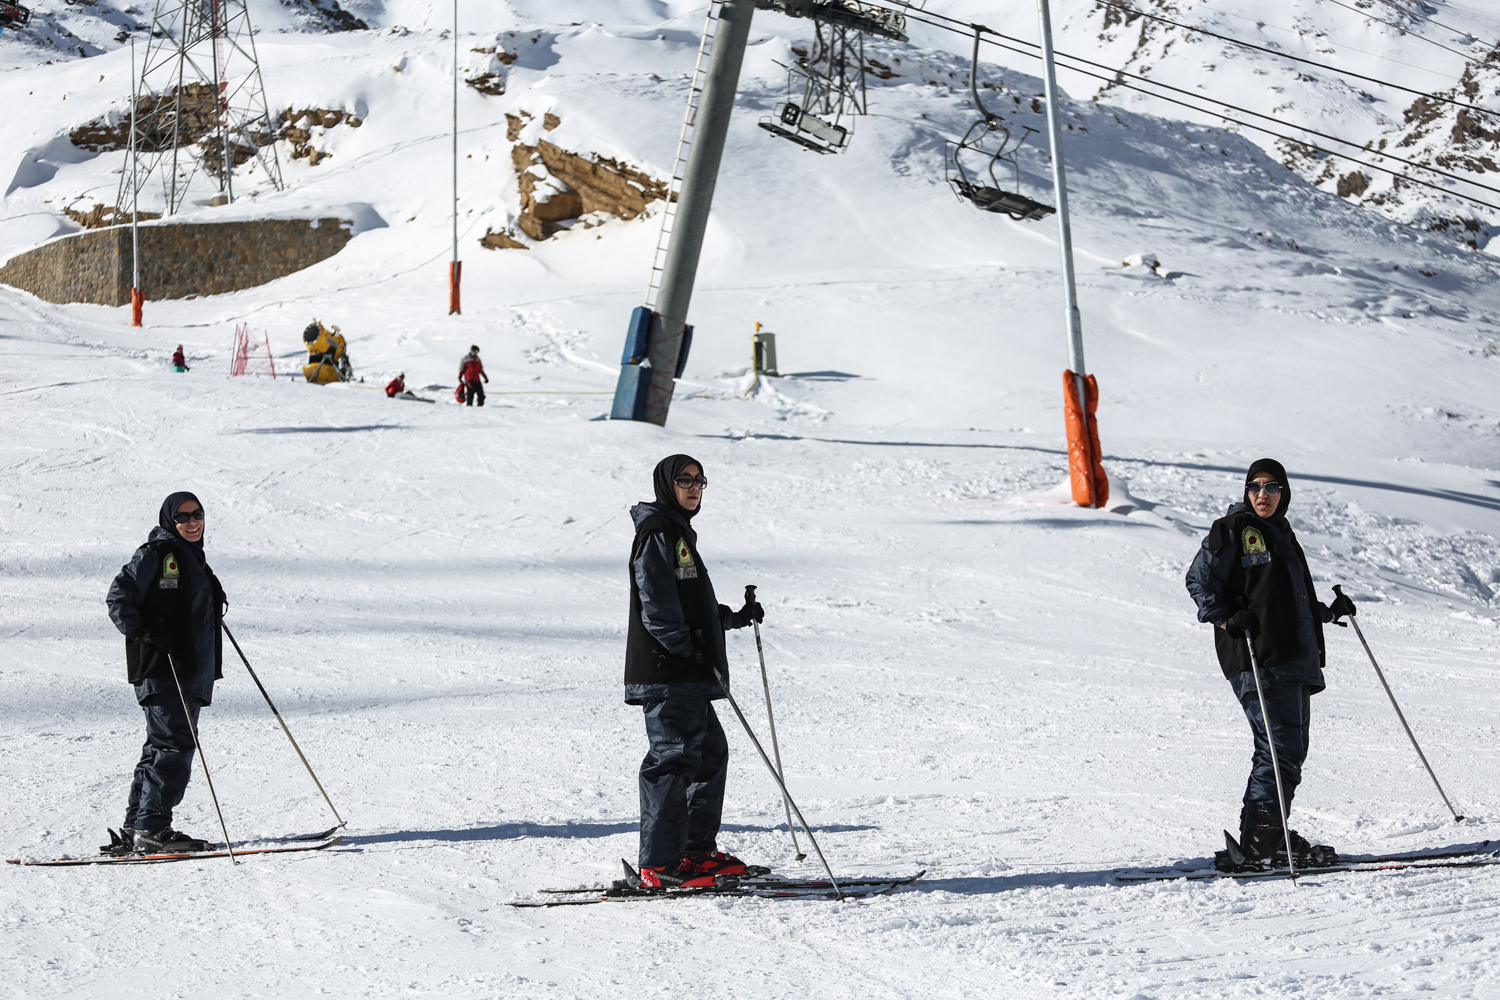 A number of officers are posted at the Darbandsar Ski Resort to ensure security. [Mohammad Ali Najib/Al Jazeera]